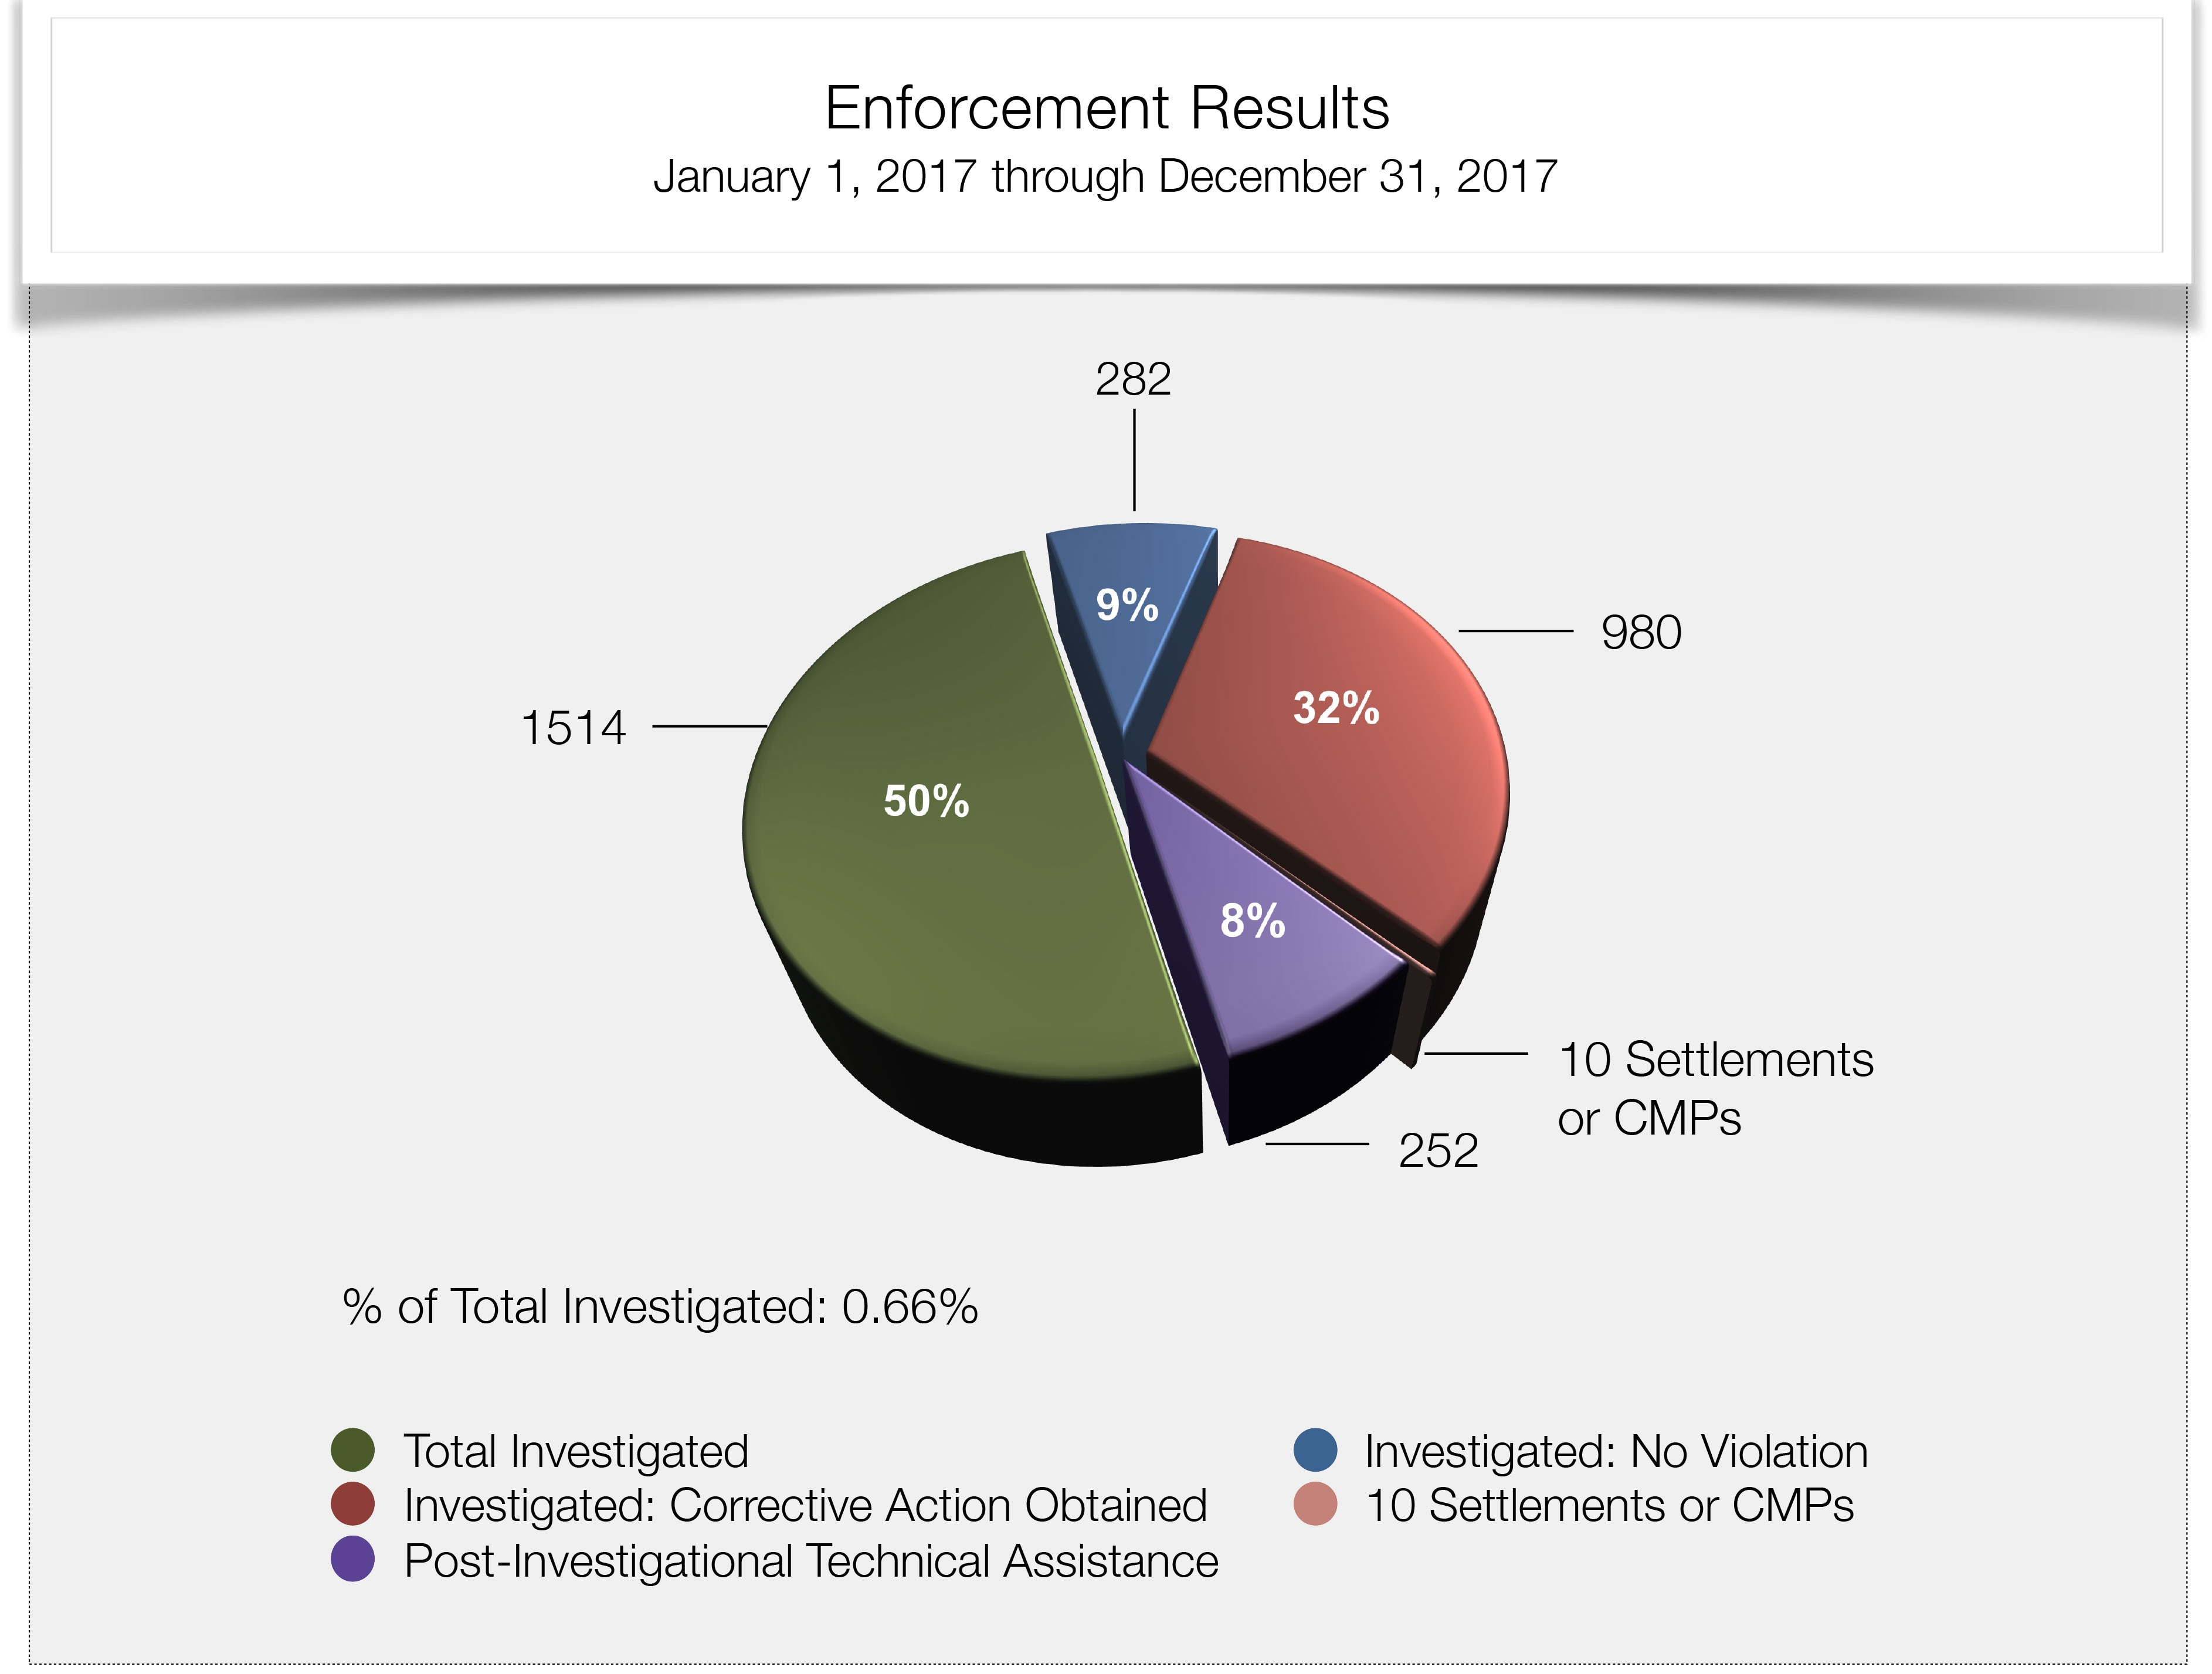 Total Cases Investigated 2017